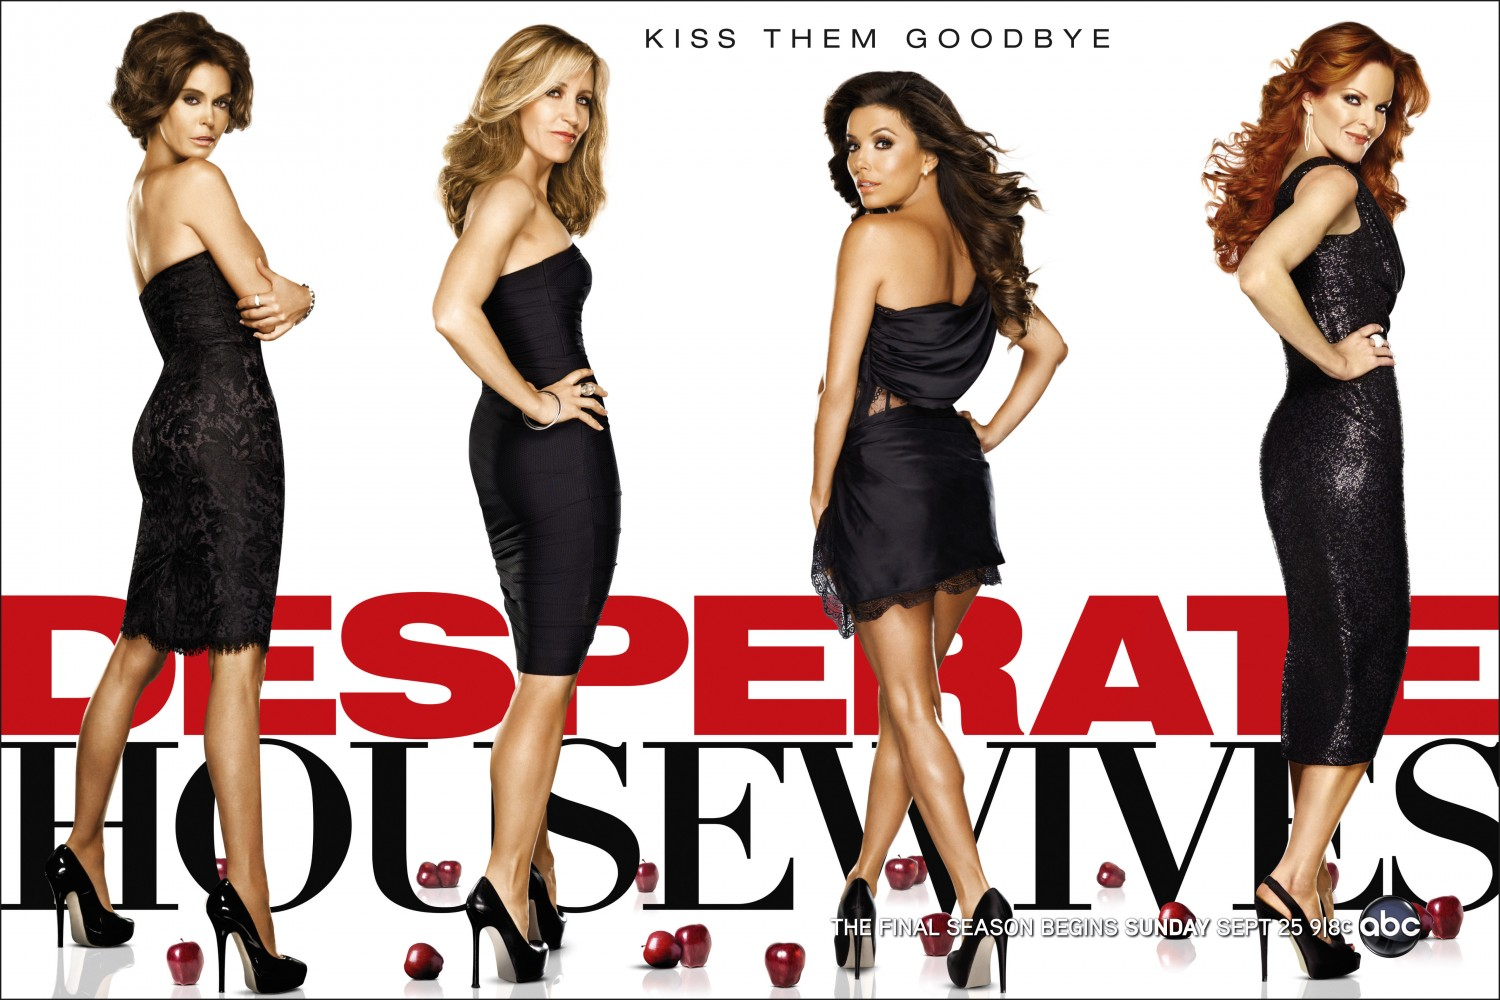 Desperate Housewives Poster Gallery3 | Tv Series Posters and Cast Desperatehousewives